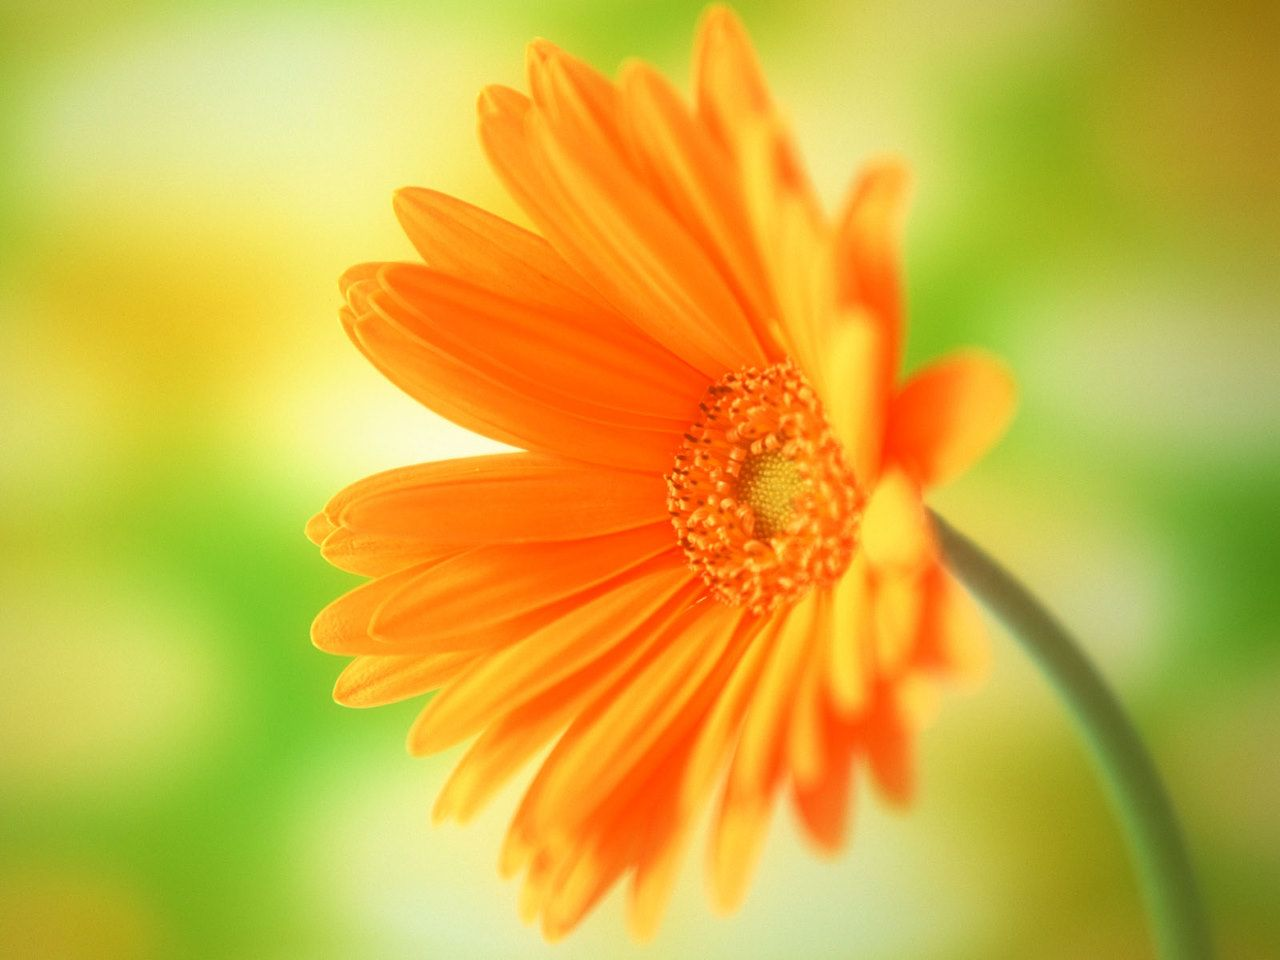 LATEST WALLPAPERS: Flowers Wallpapers, Flowers Animated Wallpaper ...